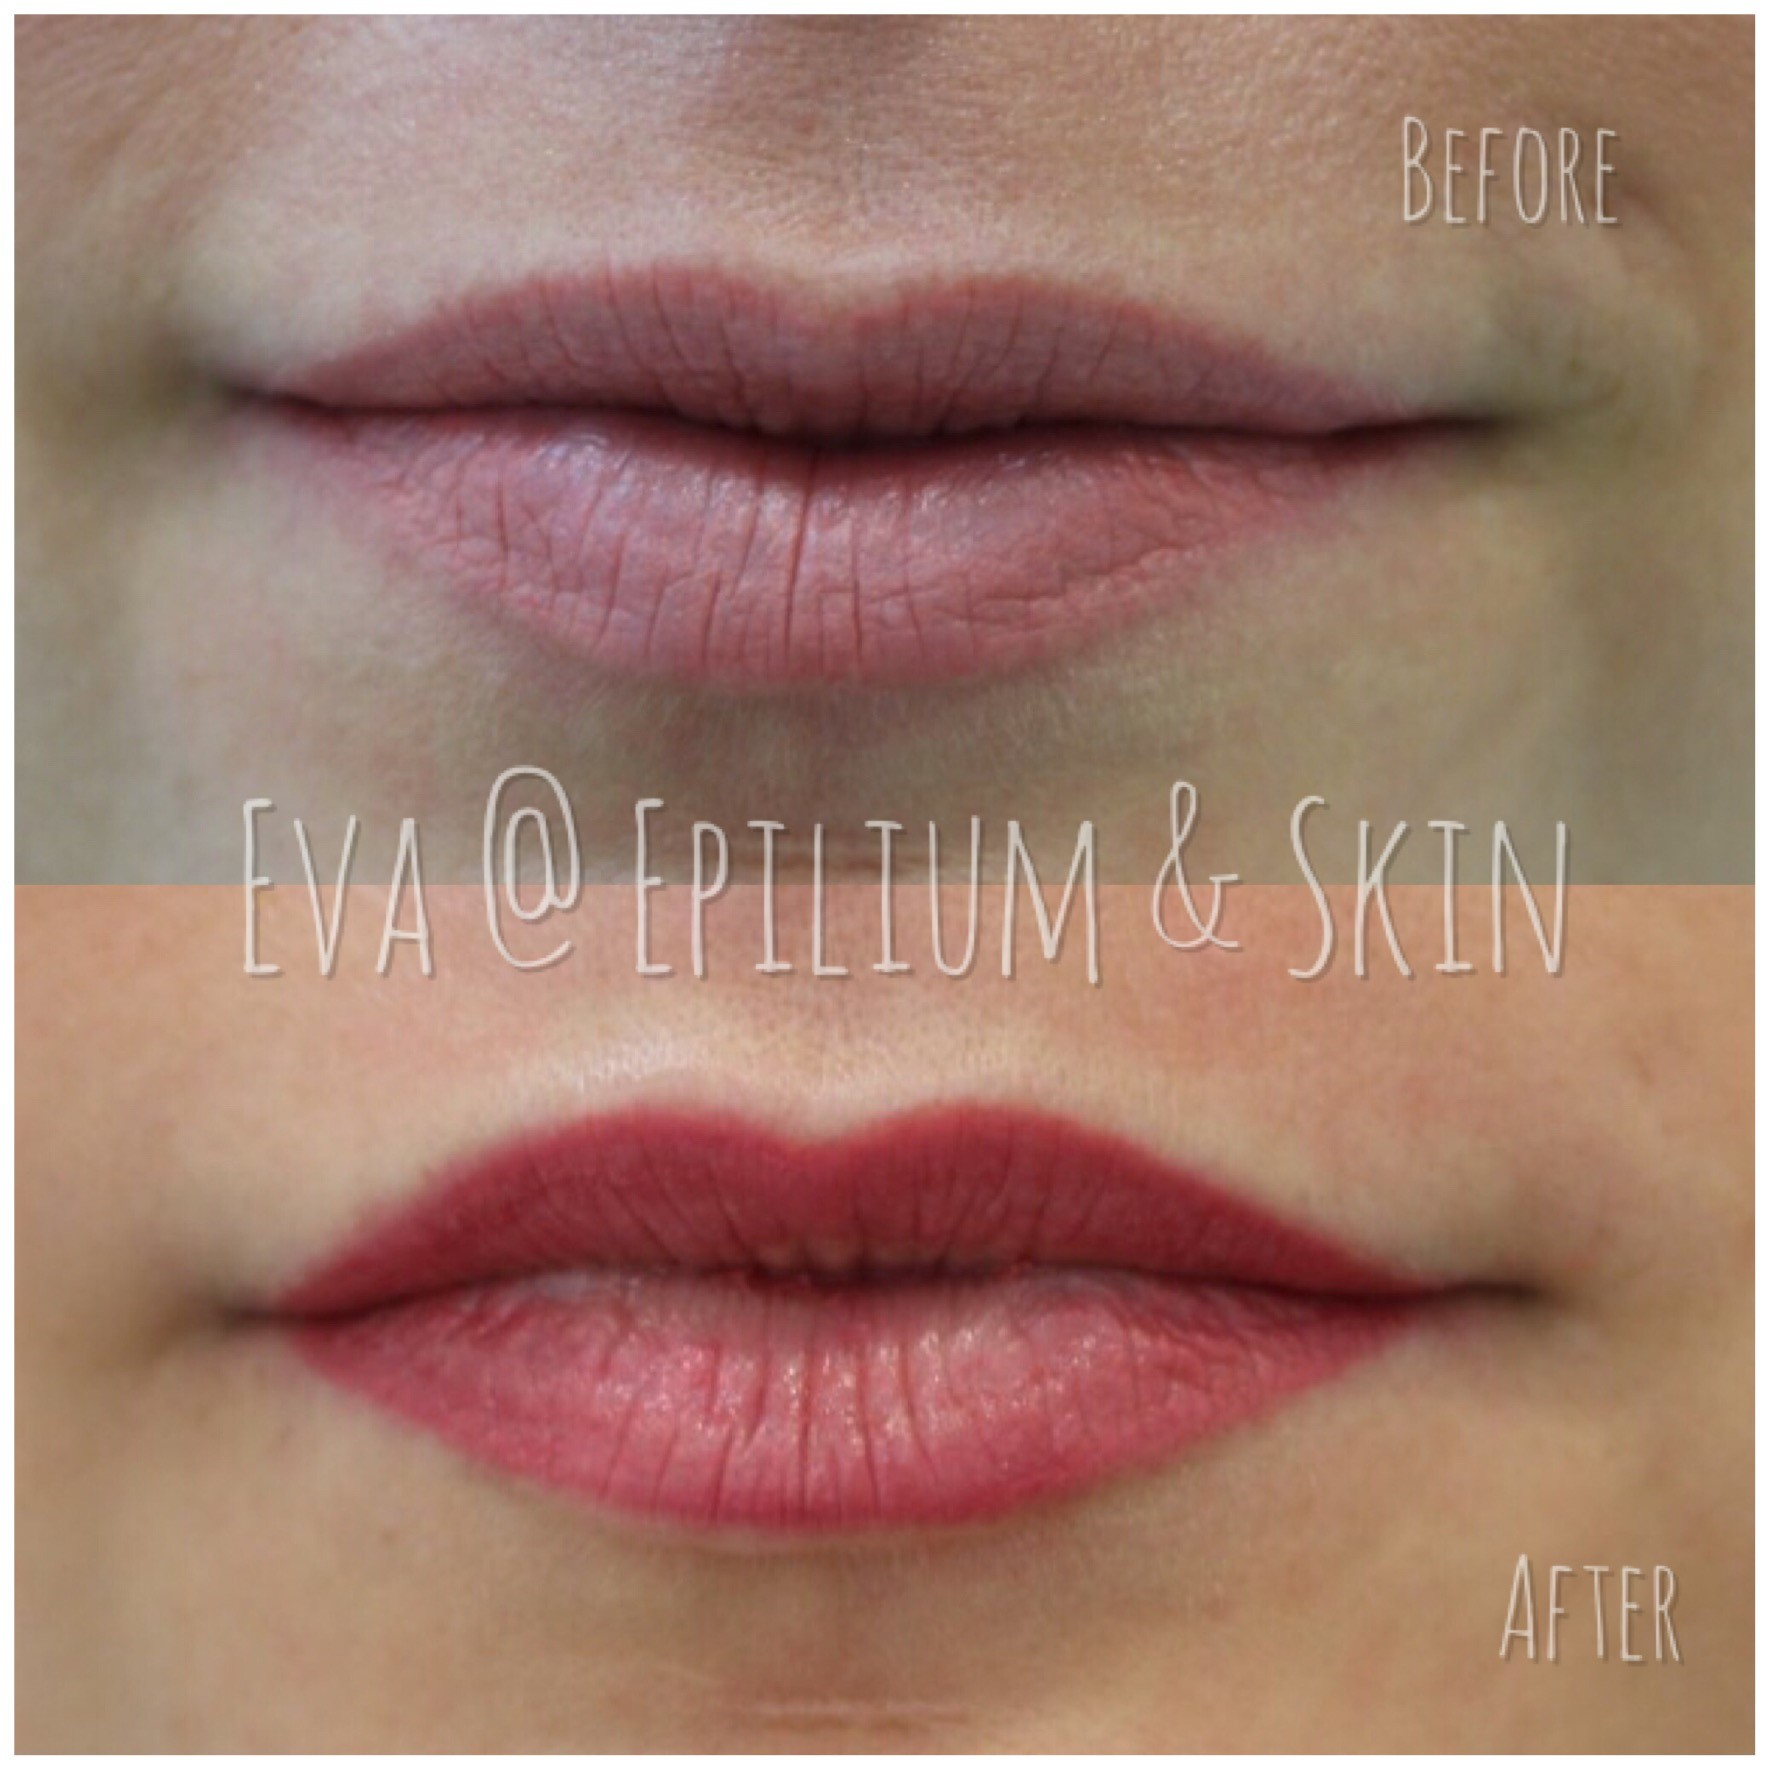 Before and after woman's lips after semi permanent Makeup treatment for fullness, definition, and colour intensity